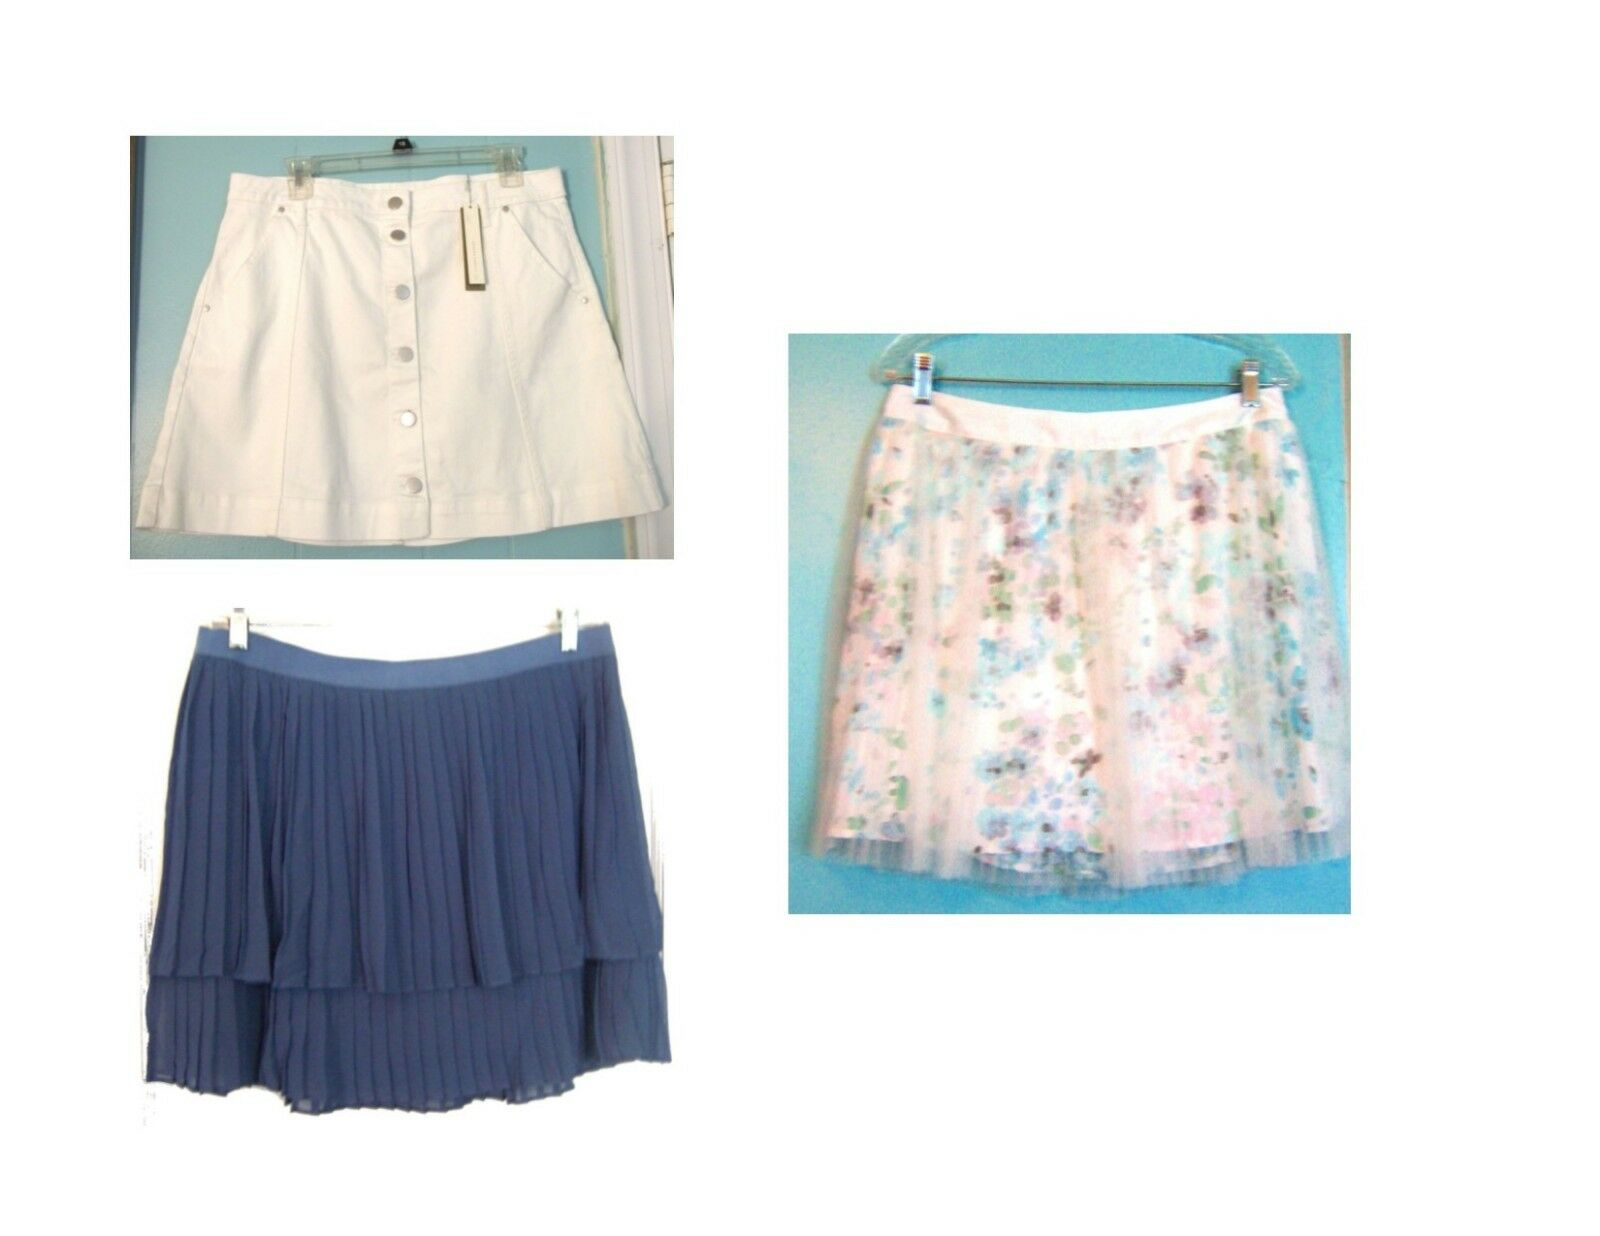 Lauren Conrad A Line Skirts Above Knee Skirts NWT 44- 50 Sz L-XL